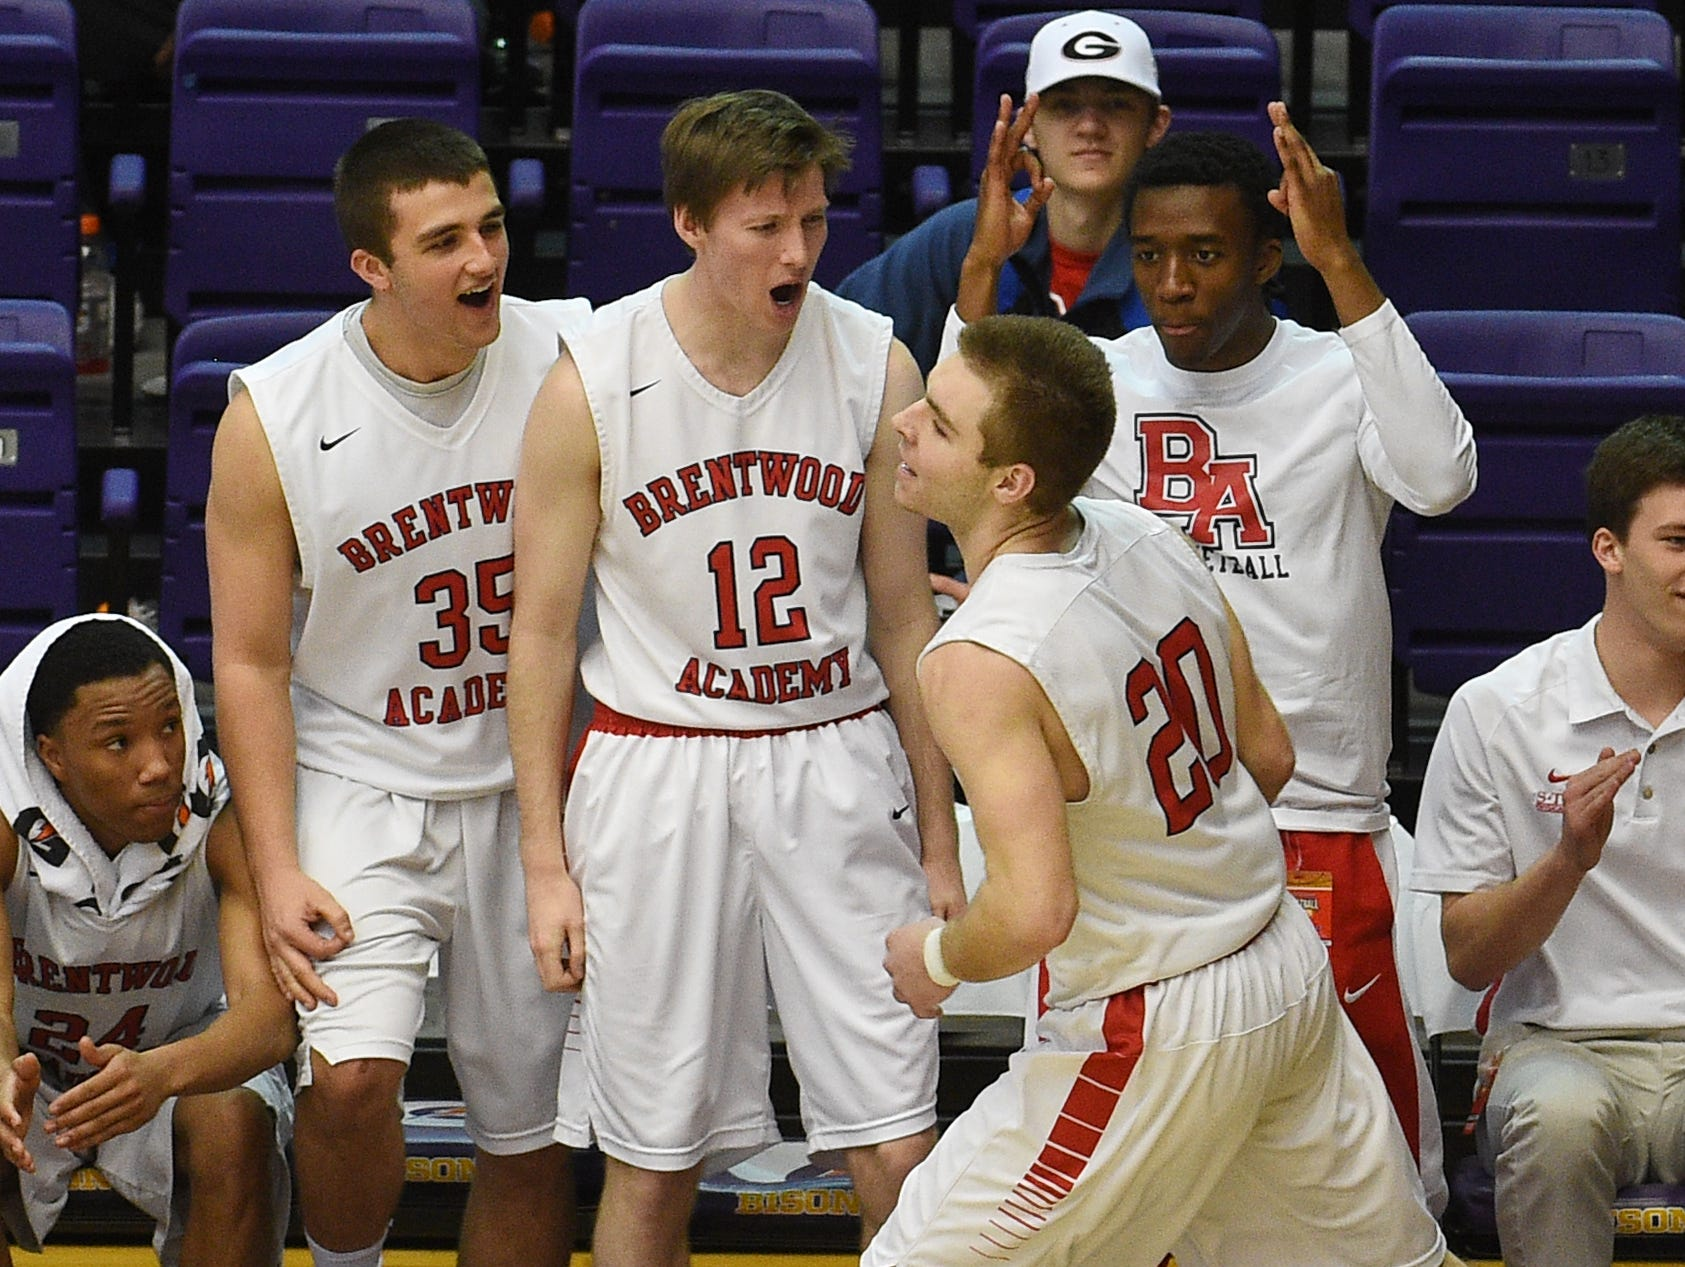 Brentwood Academy celebrates after Jeremiah Oatawall (20) scores during the TSSAA DII-AA semifinals at Lipscomb University on March 4, 2016.